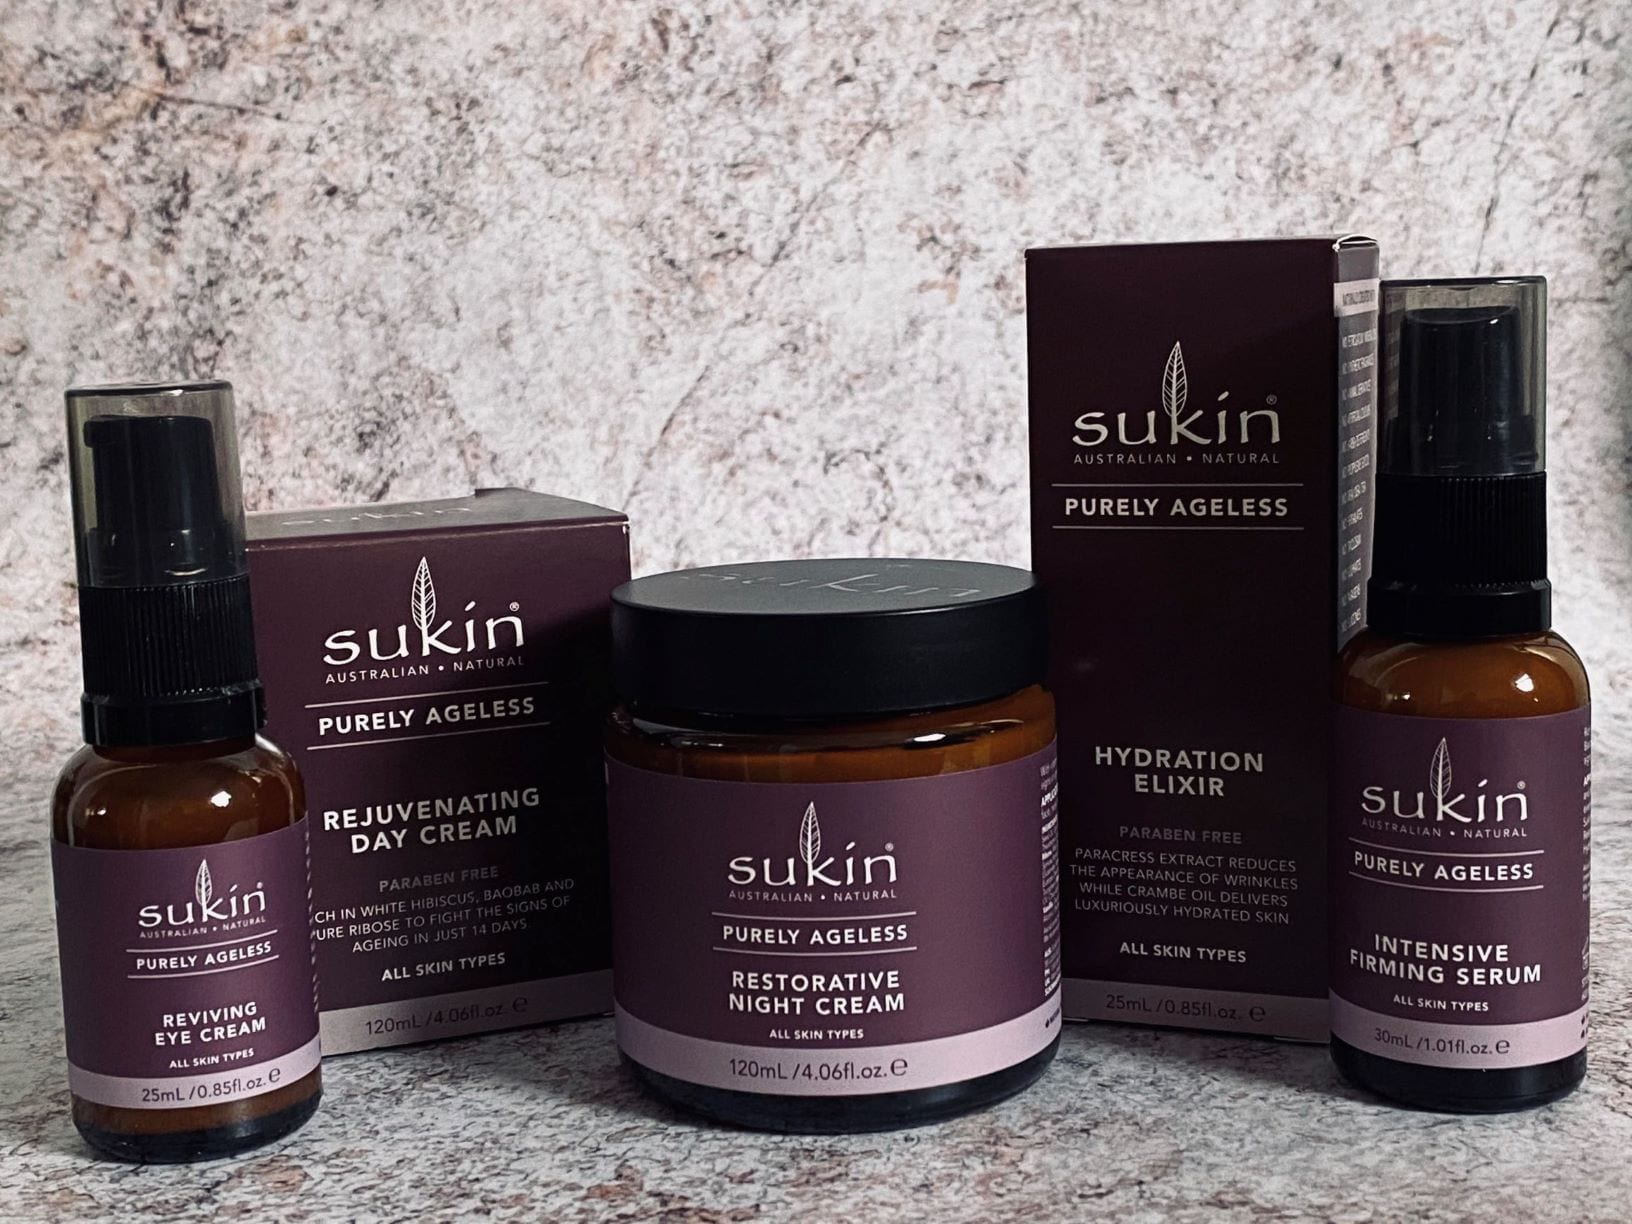 Sukin Products